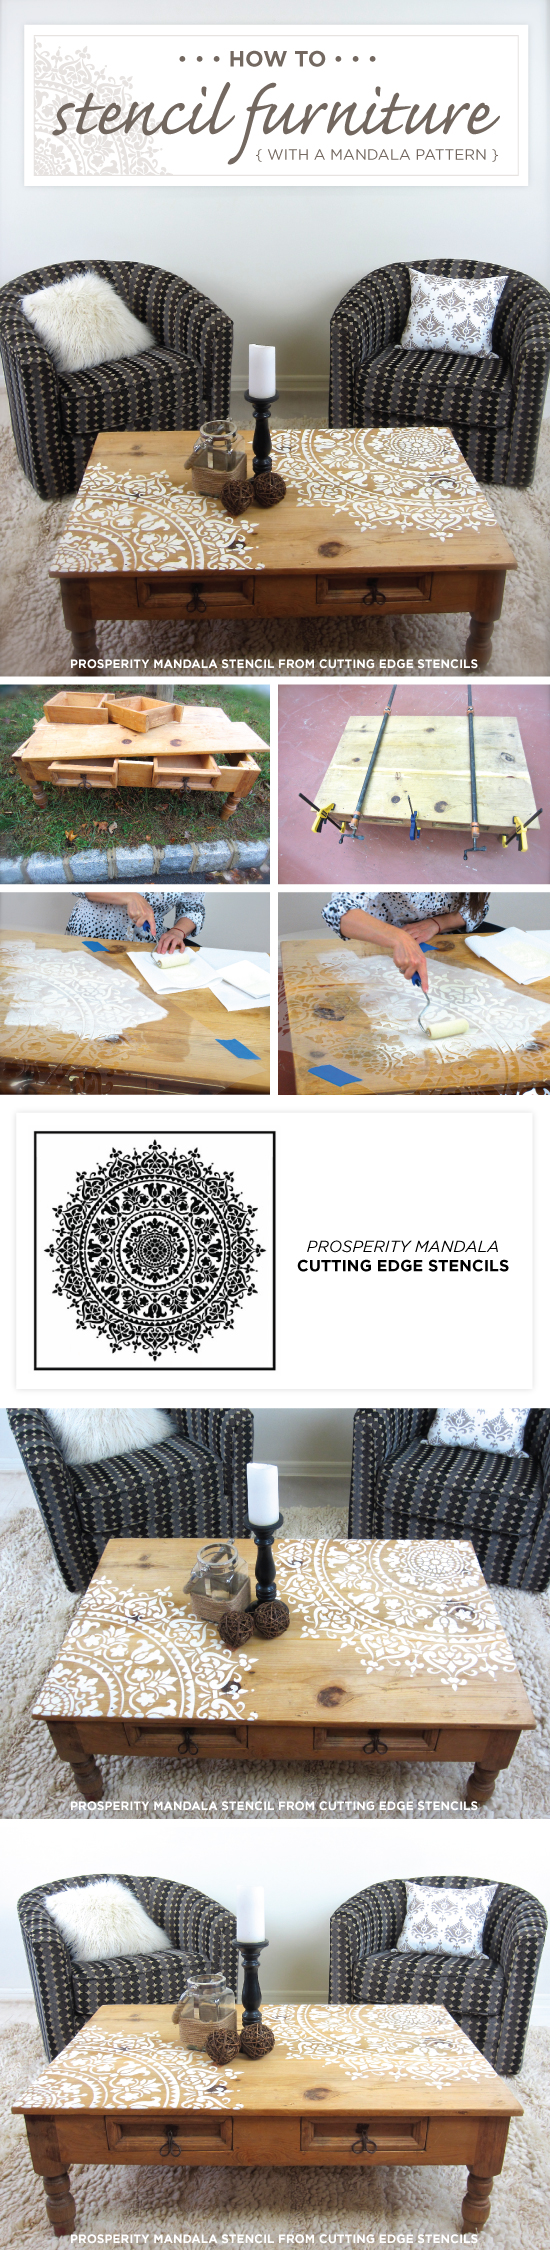 How To Stencil Furniture With A Mandala Pattern